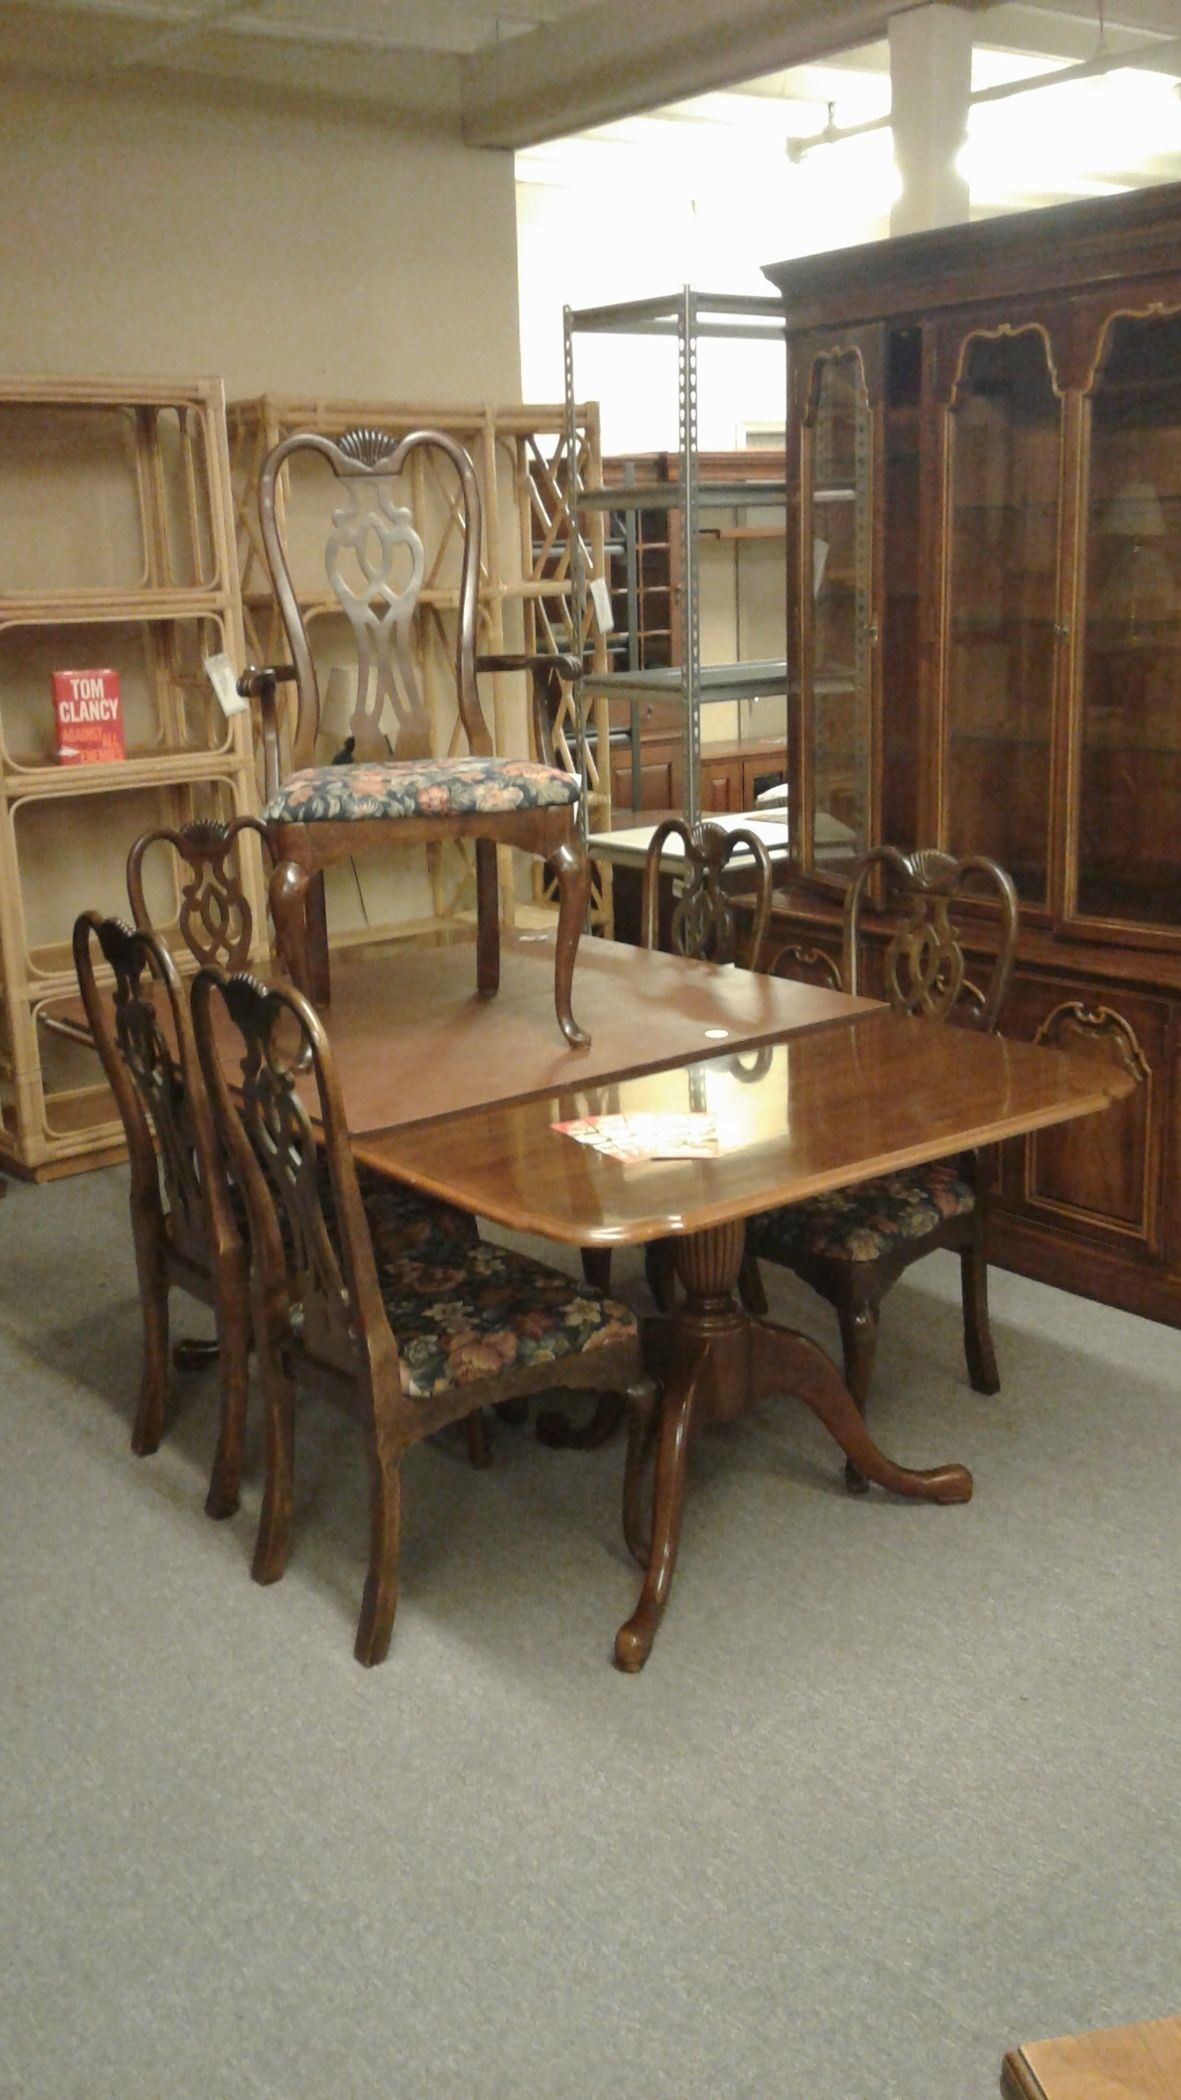 thomasville sofa table with stools seattle homebase w 6 chairs delmarva furniture consignment